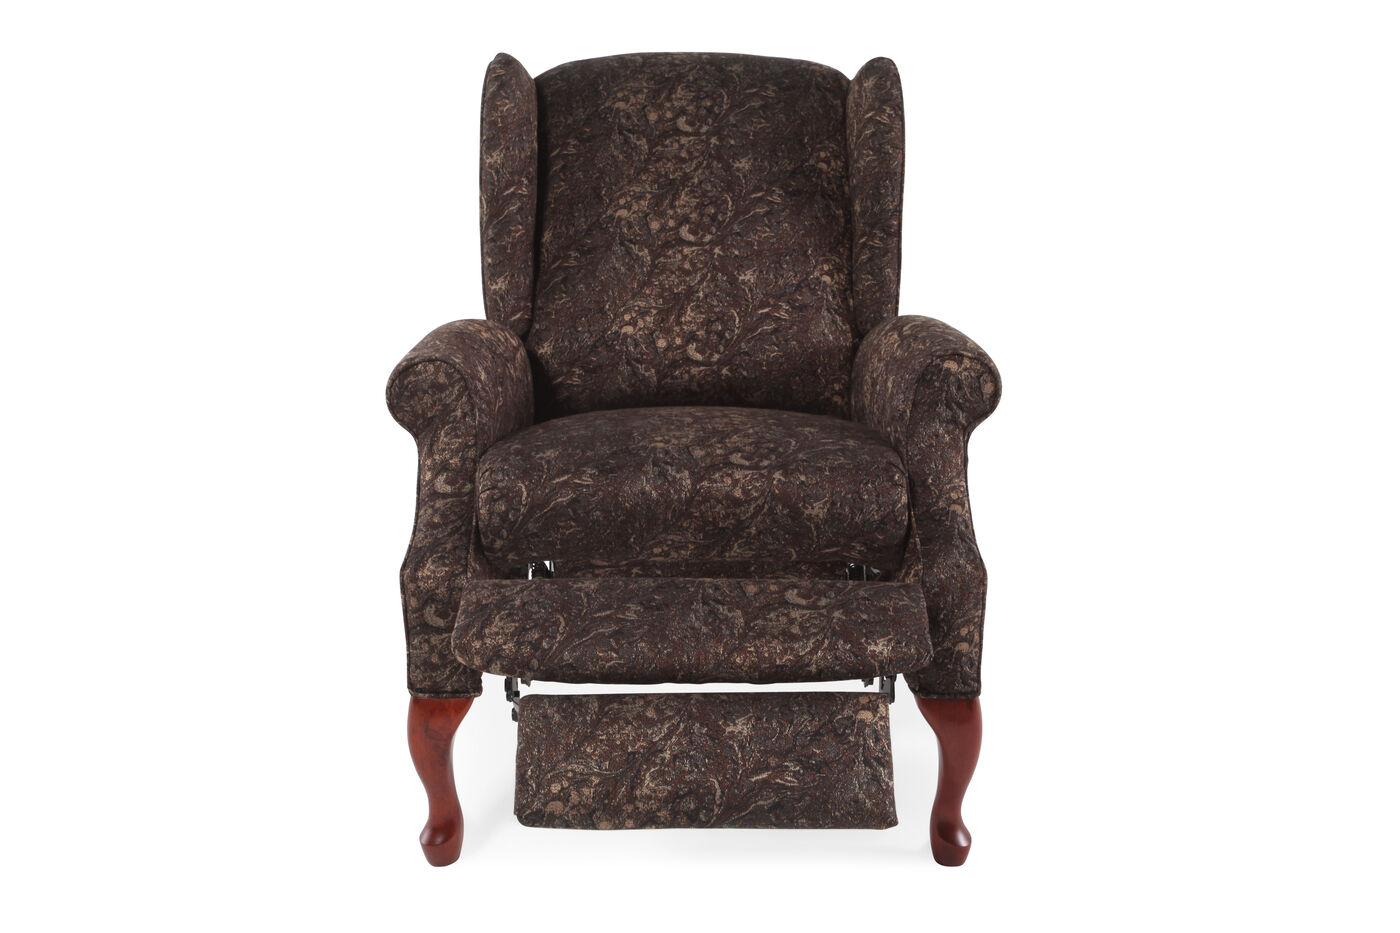 Lane hampton jacquard recliner mathis brothers furniture for Furniture 66 long lane liverpool